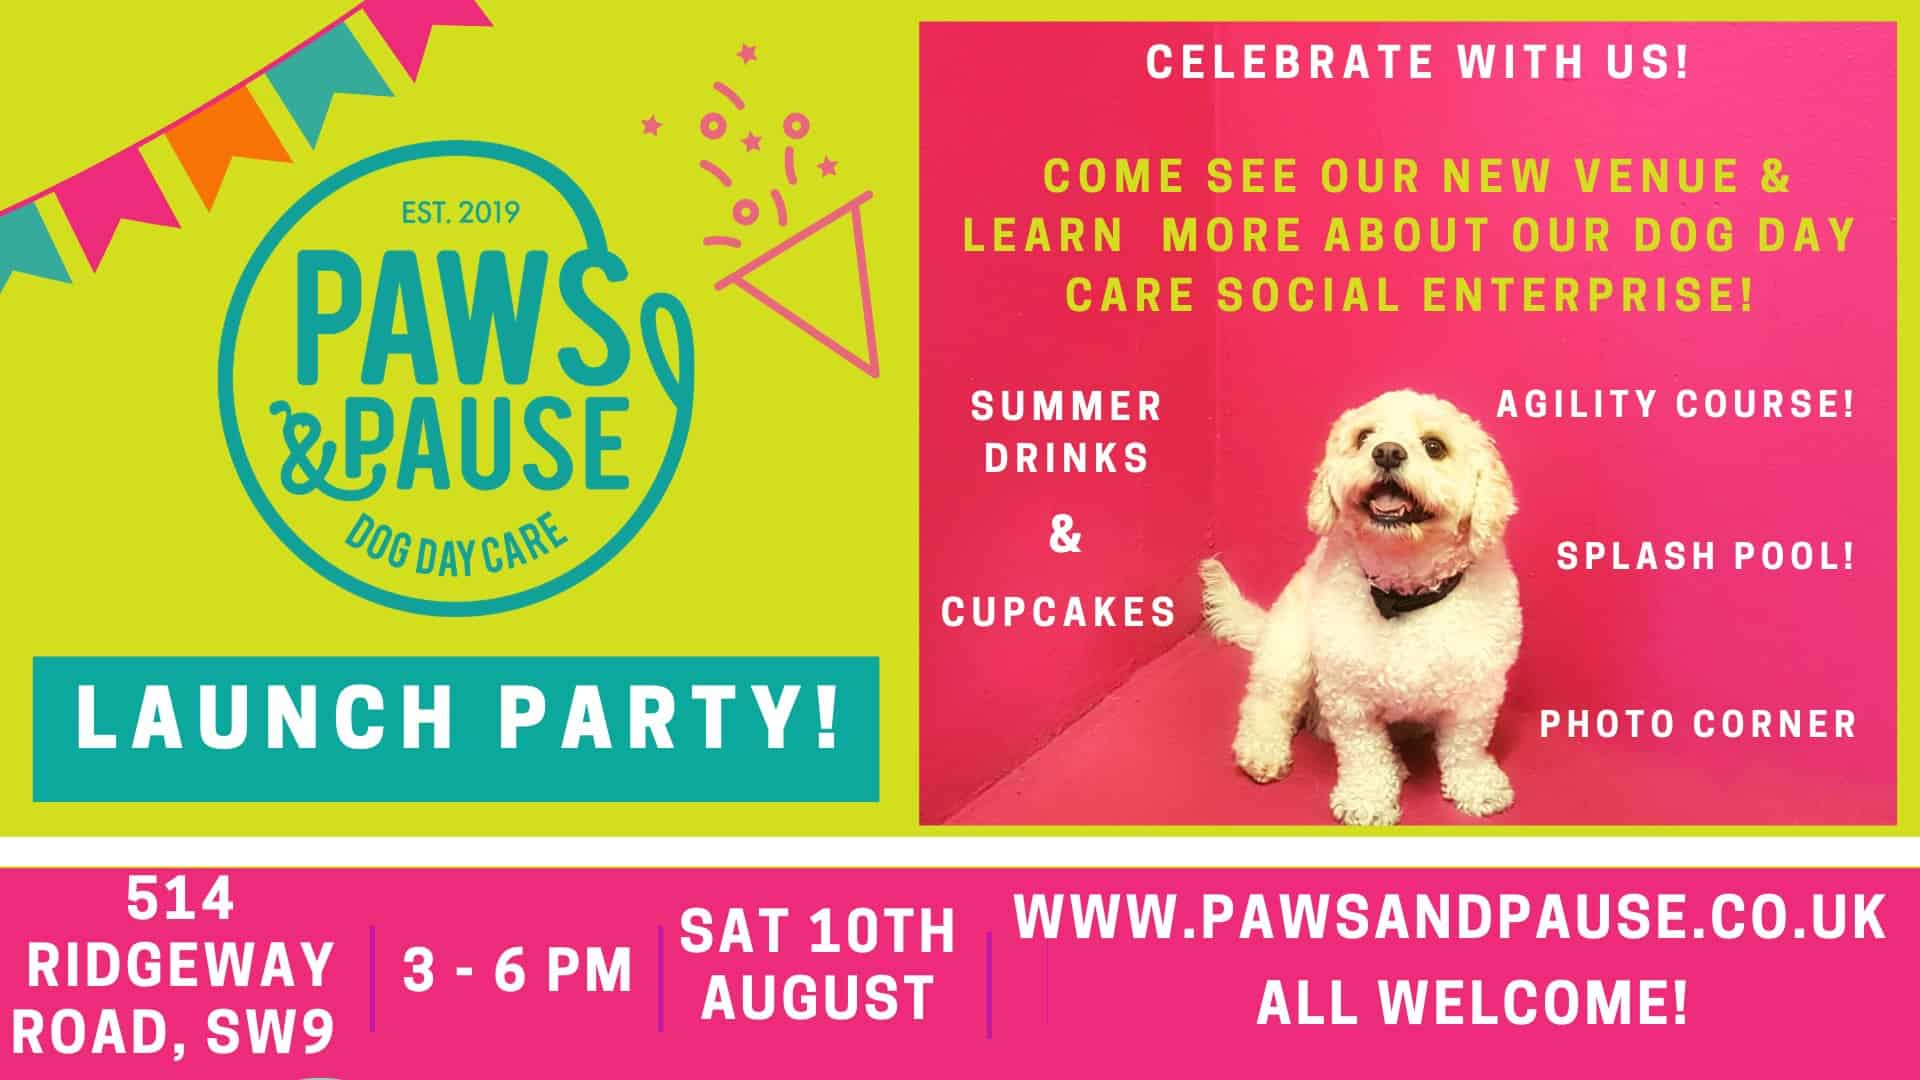 Paws & Pause Launch Party